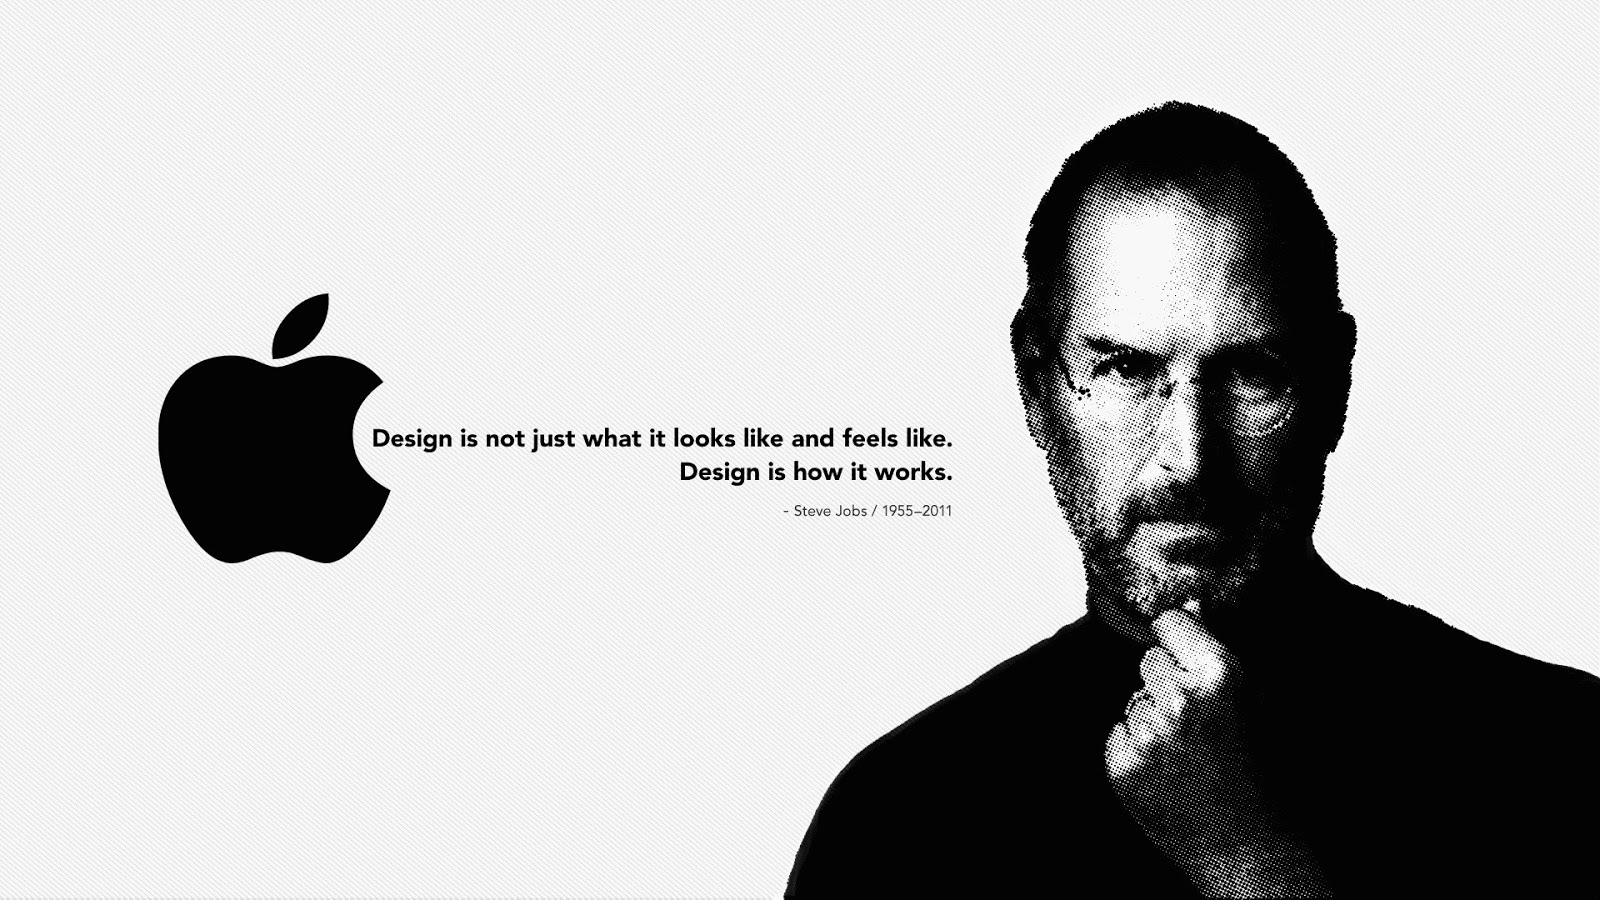 great quote by steve jobs